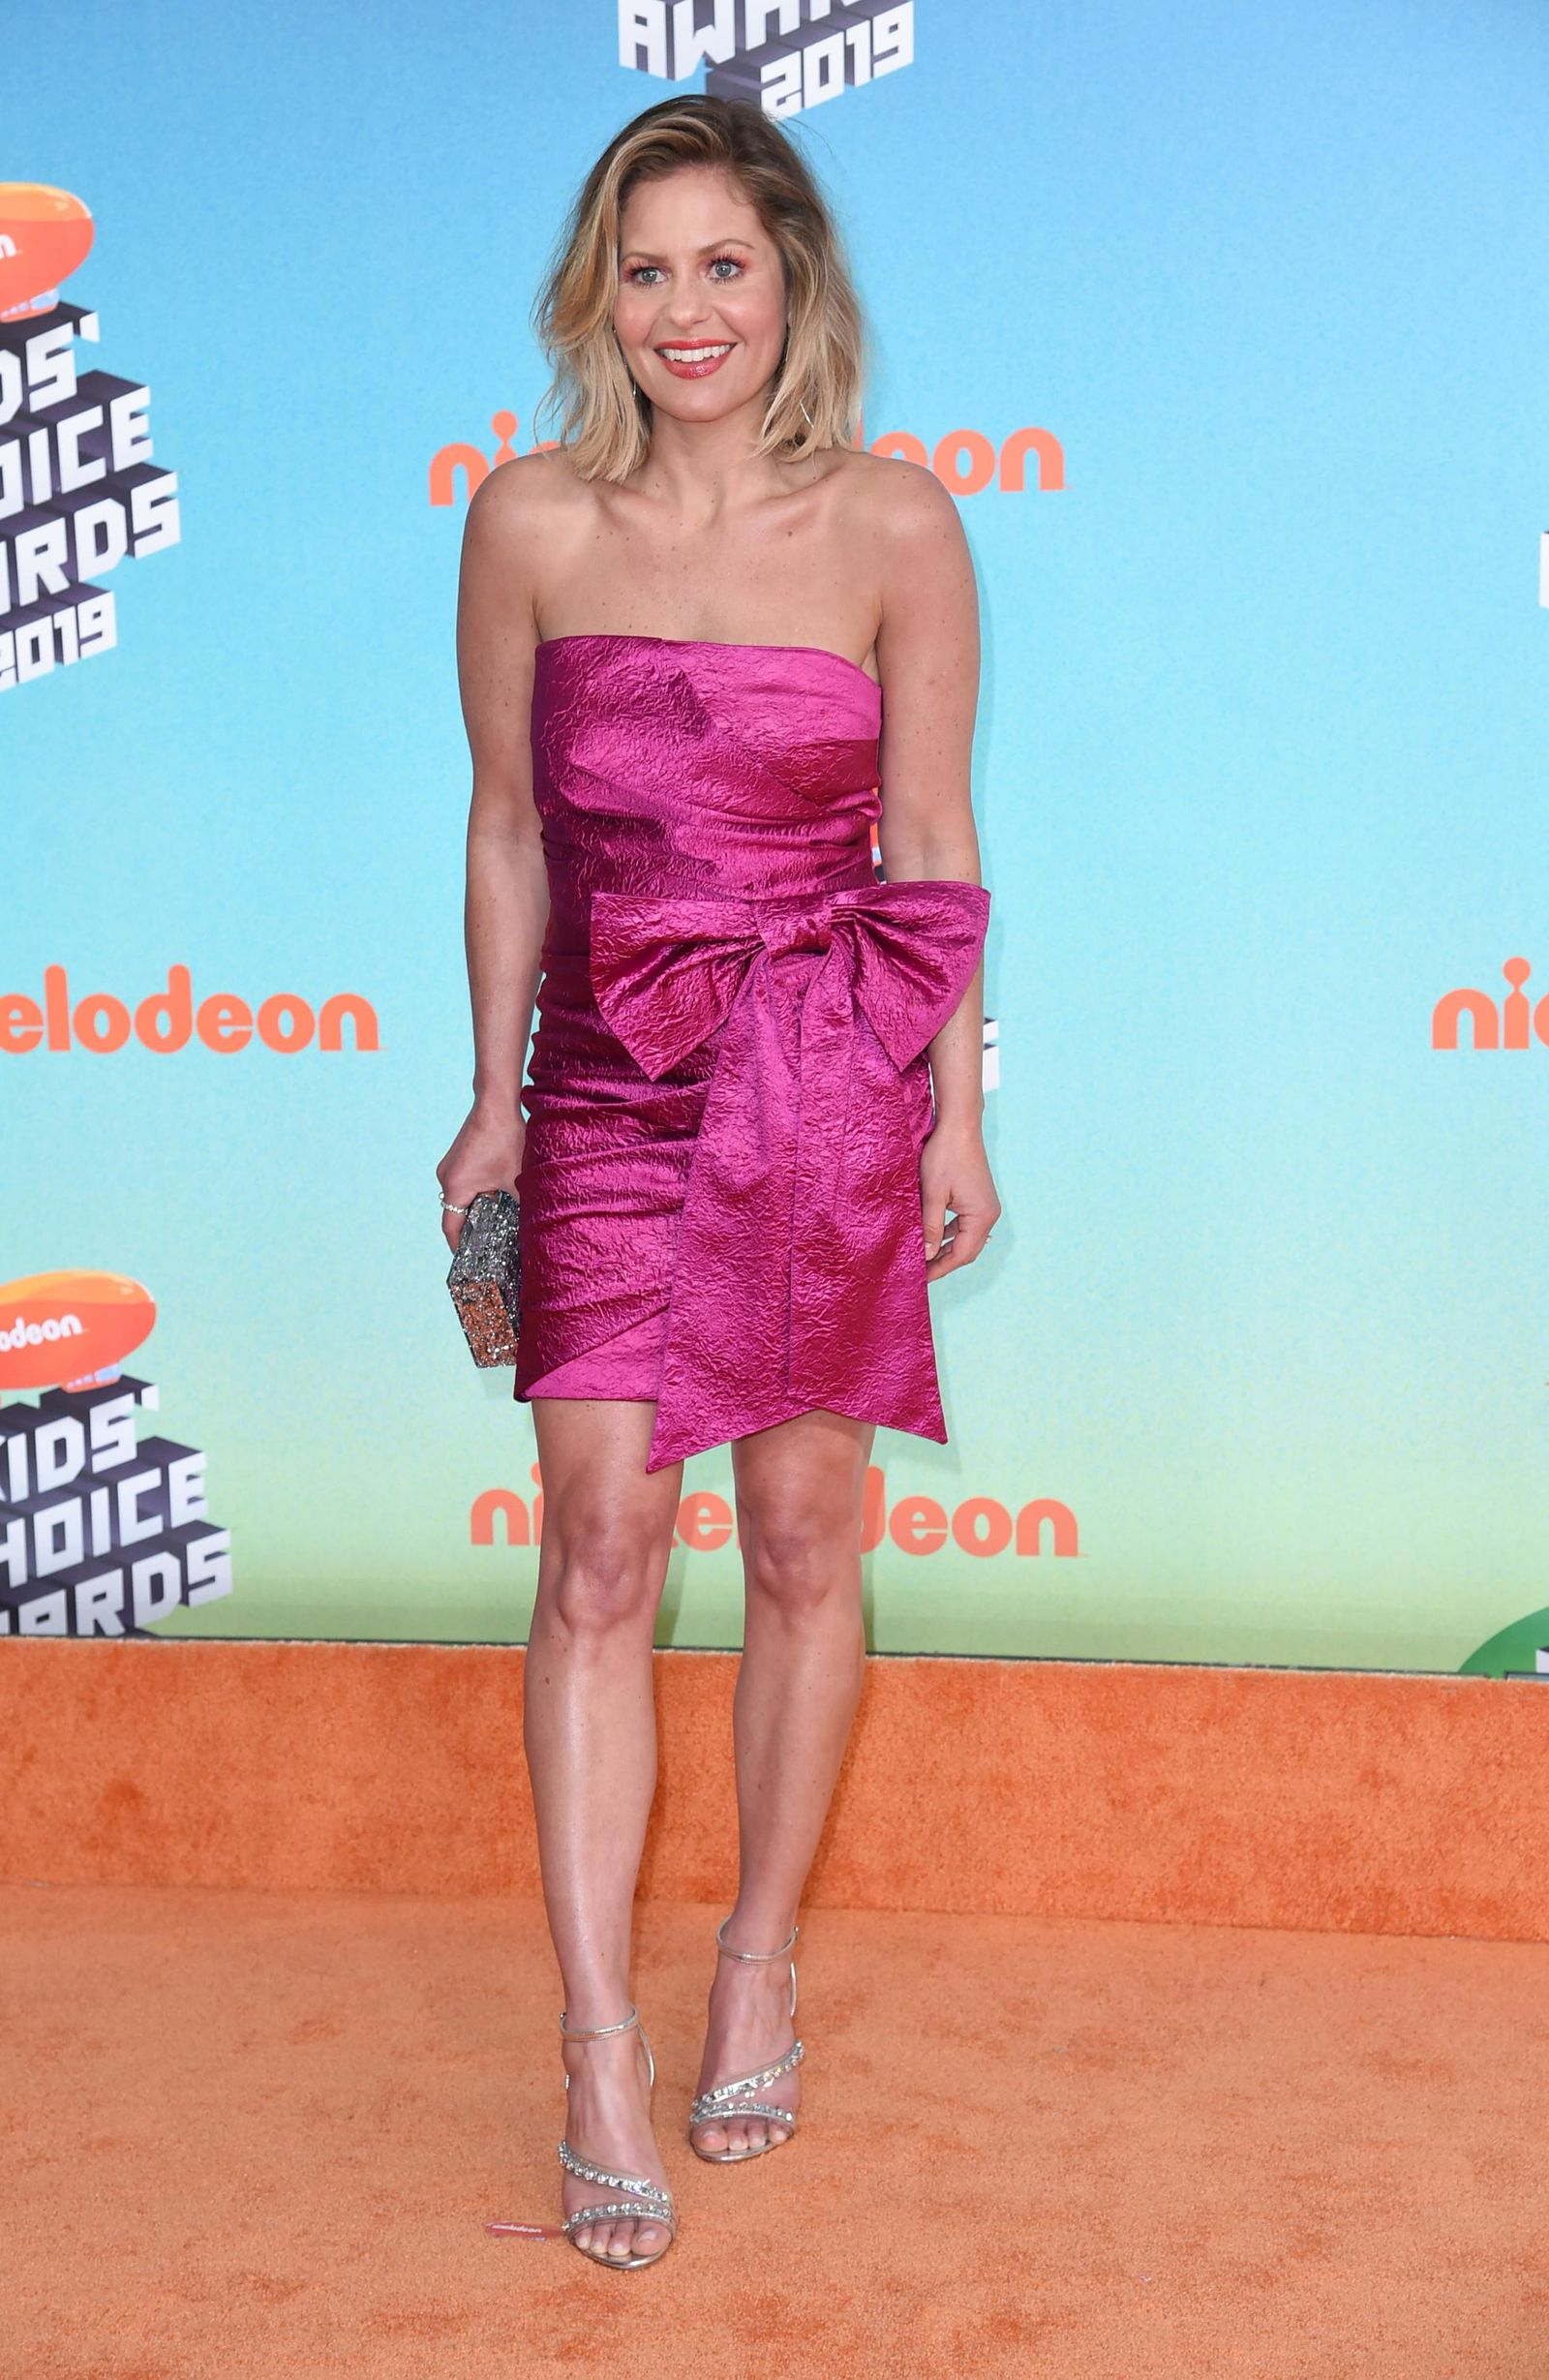 This photo taken Saturday, March 23, 2019, shows Candace Cameron-Bure arriving at the Nickelodeon Kids' Choice Awards in Los Angeles. (Photo by Richard Shotwell/Invision/AP)